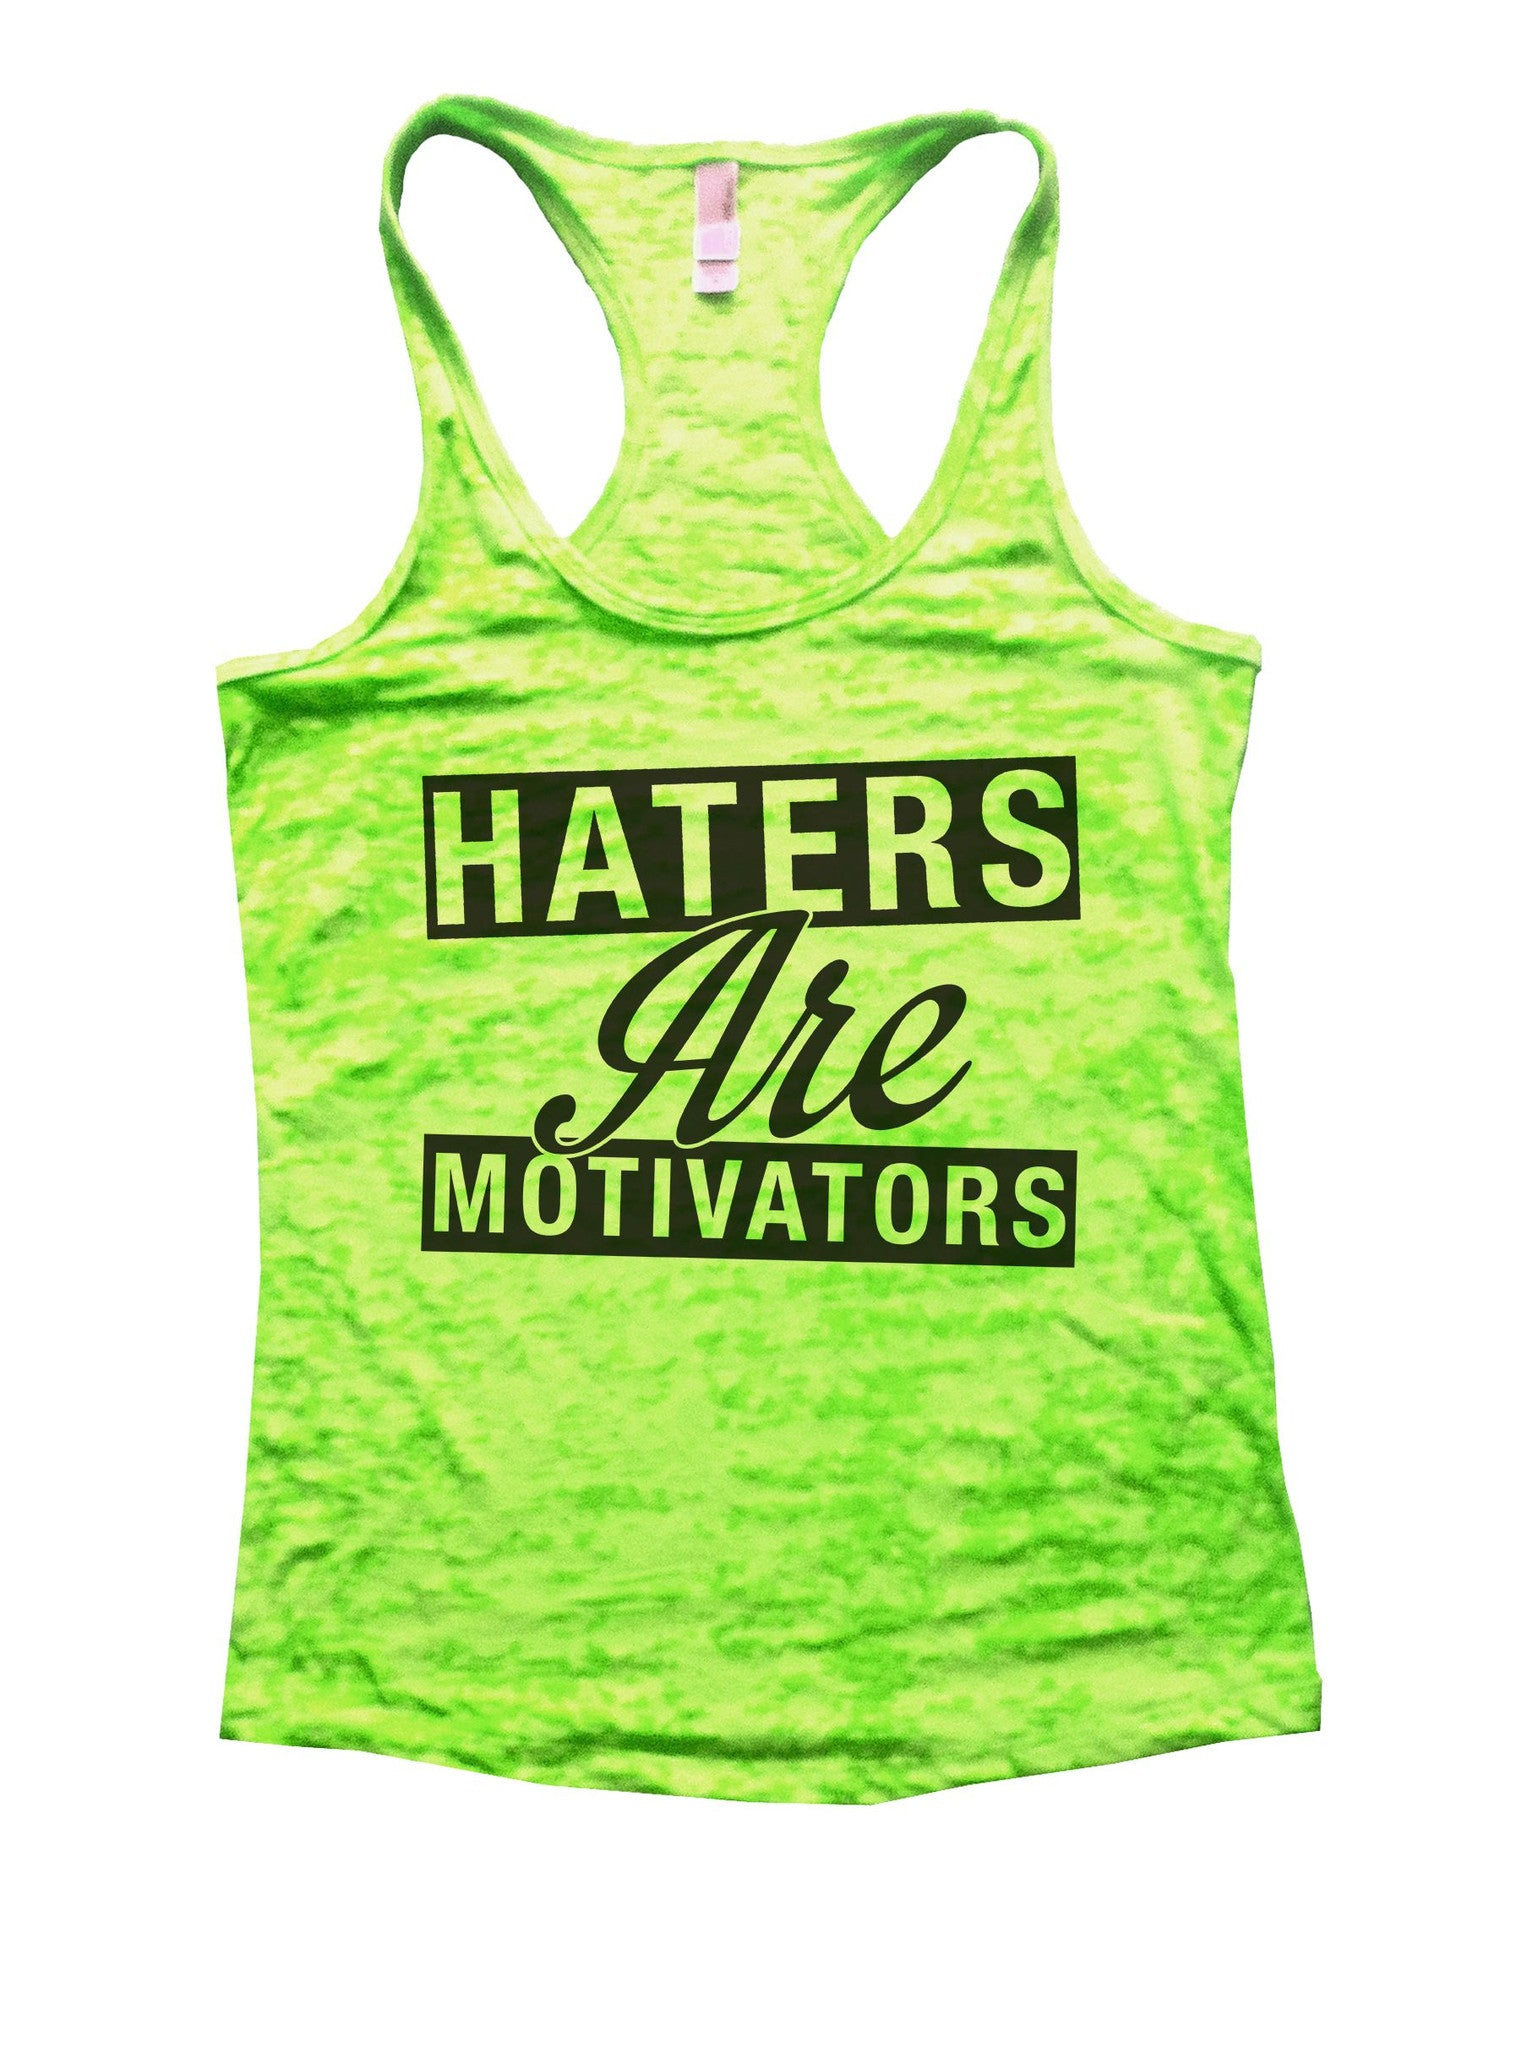 Haters Are Motivators Burnout Tank Top By BurnoutTankTops.com - 842 - Funny Shirts Tank Tops Burnouts and Triblends  - 2